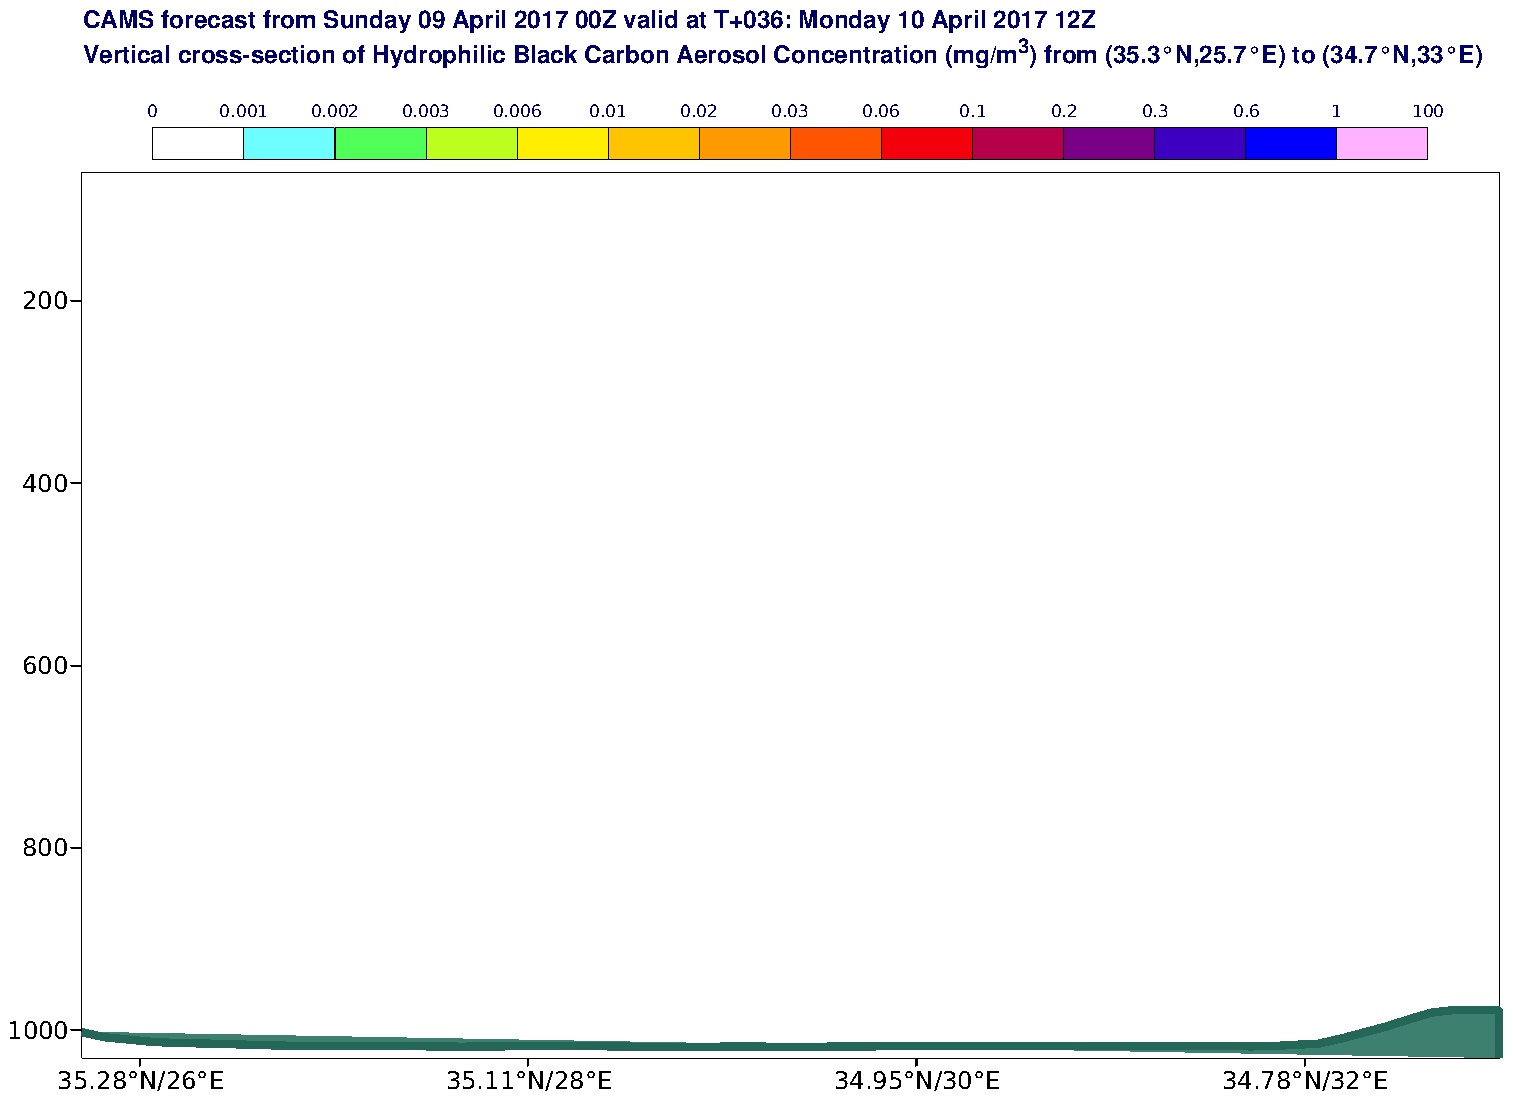 Vertical cross-section of Hydrophilic Black Carbon Aerosol Concentration (mg/m3) valid at T36 - 2017-04-10 12:00